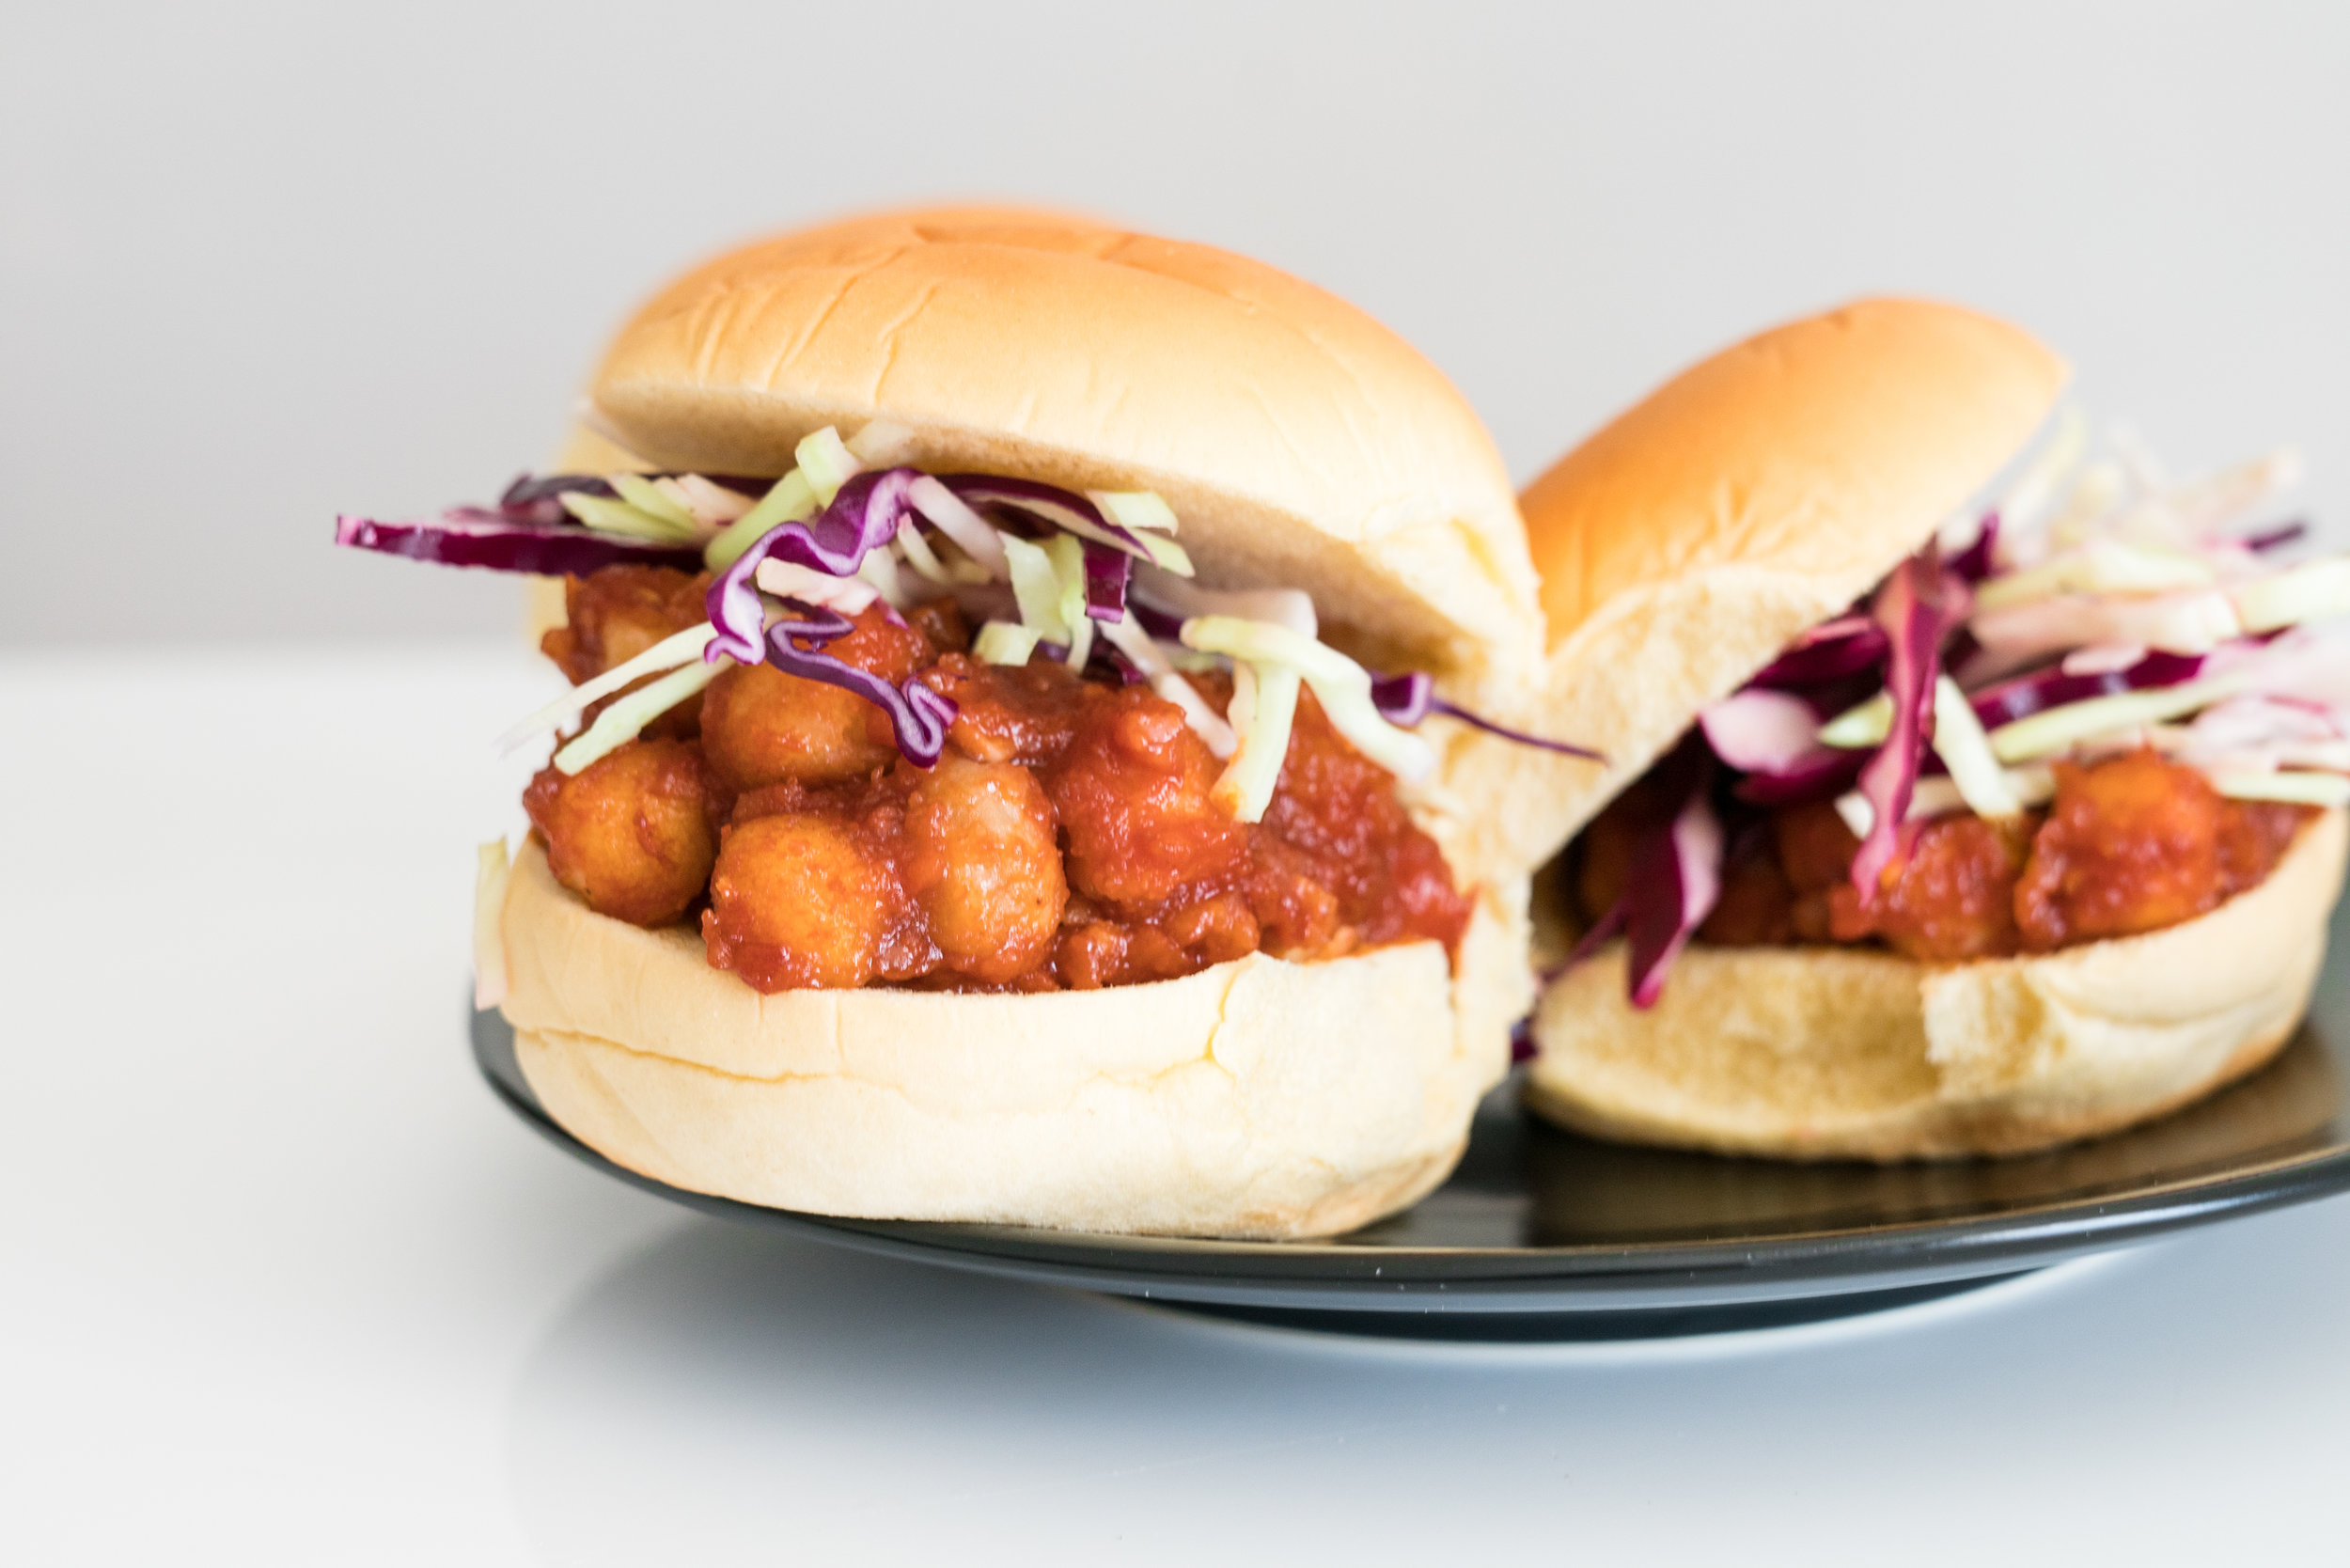 BBQ chickpea sandwich with coleslaw